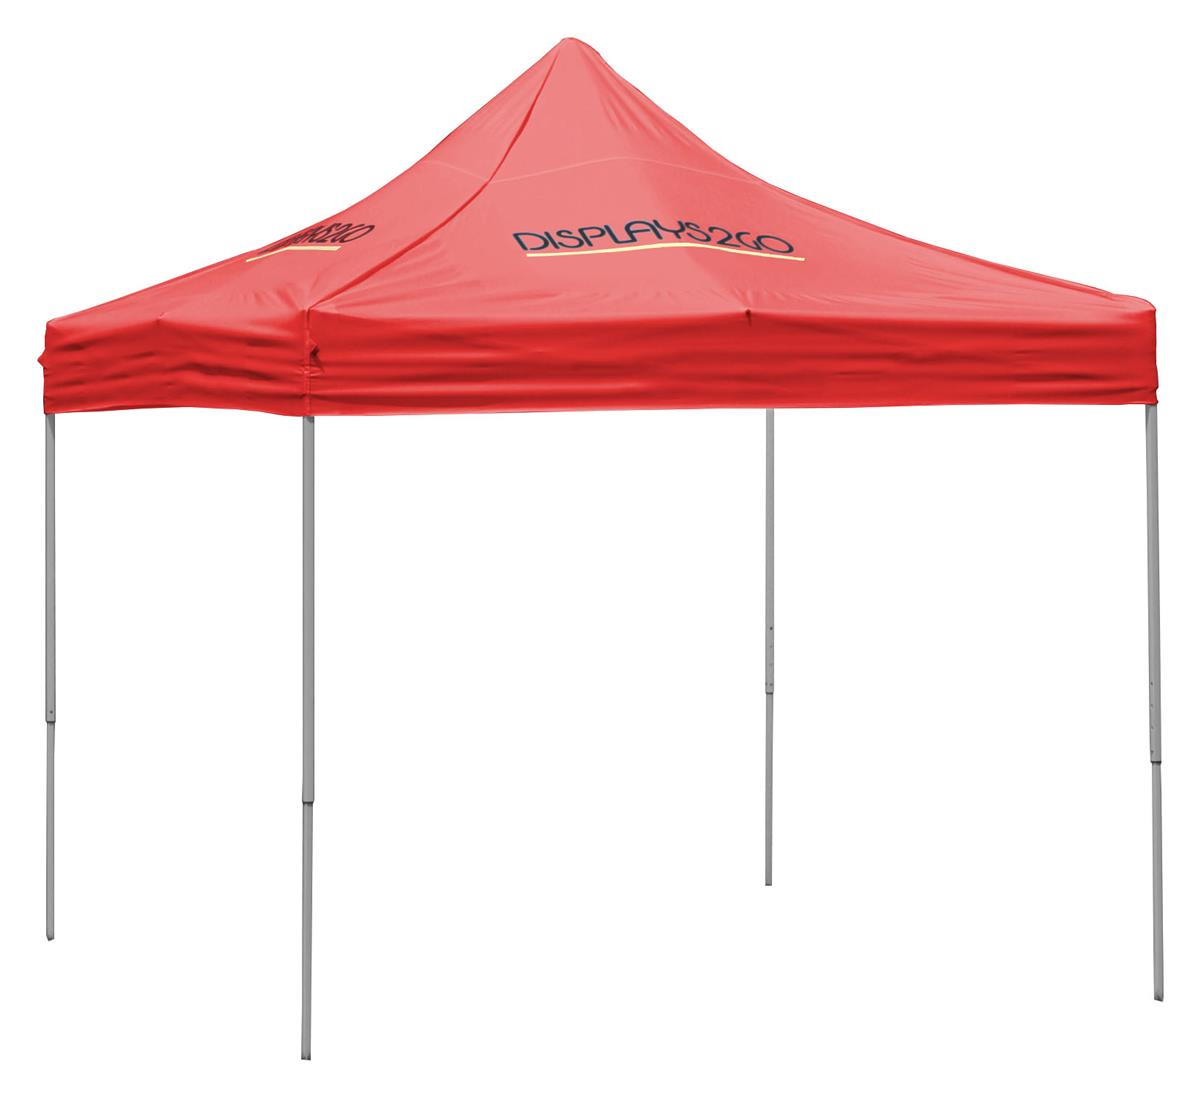 Pop Up Canopy 10 X 10 Outdoor Canopy Tent With 4 Custom Imprints Pop Up Square Red